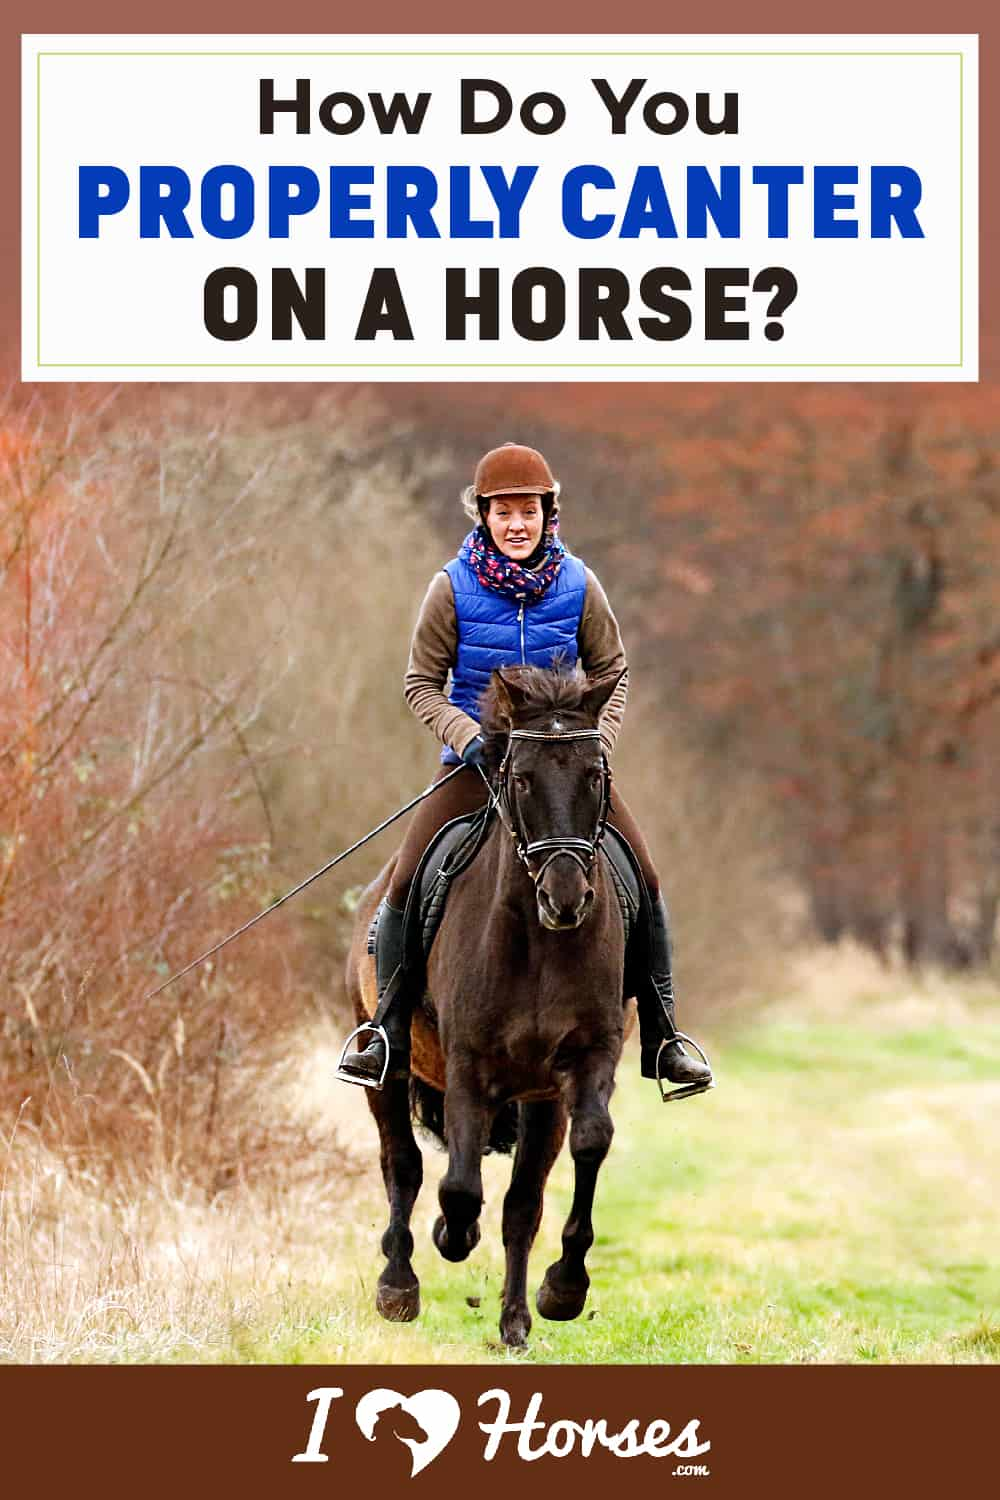 How Do You Properly Canter On A Horse-01-01